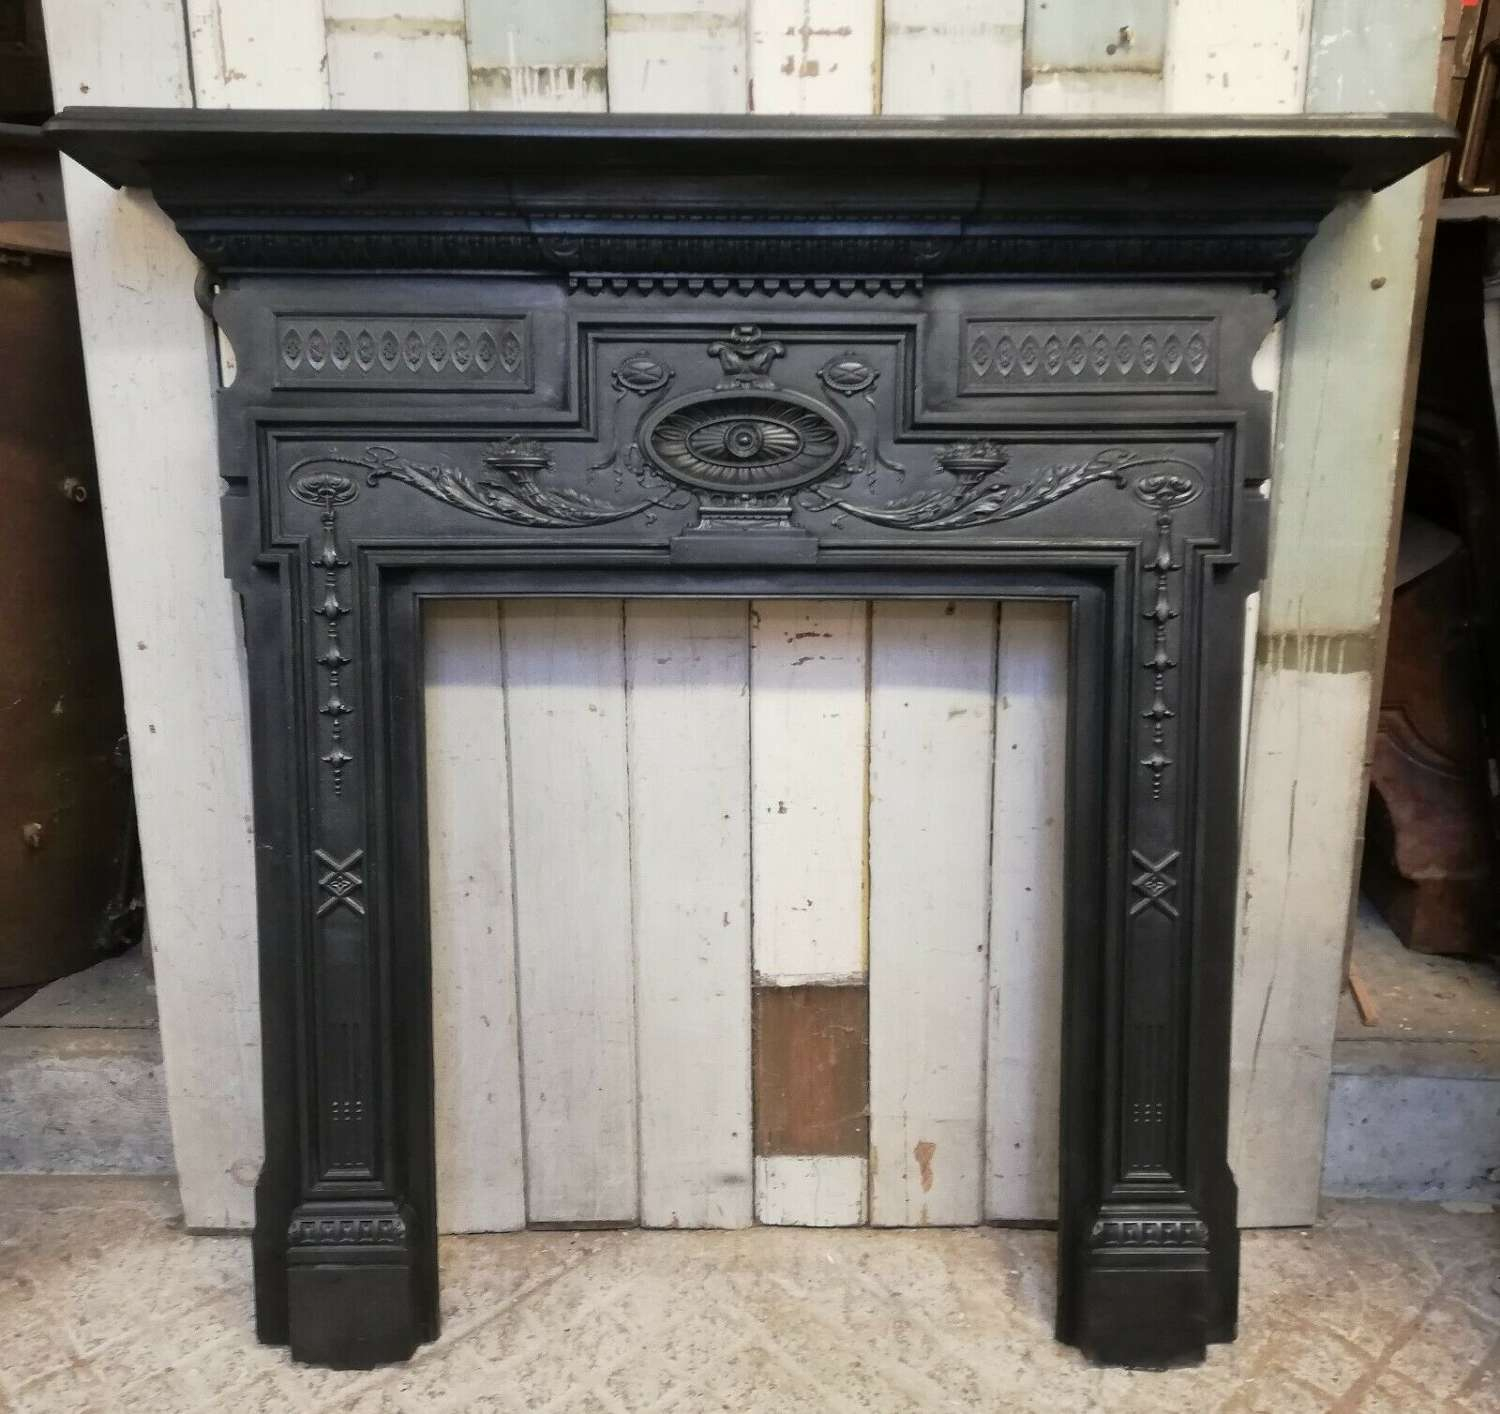 FS0085 AN ORNATE VICTORIAN CAST IRON FIRE SURROUND FOR WOOD BURNER